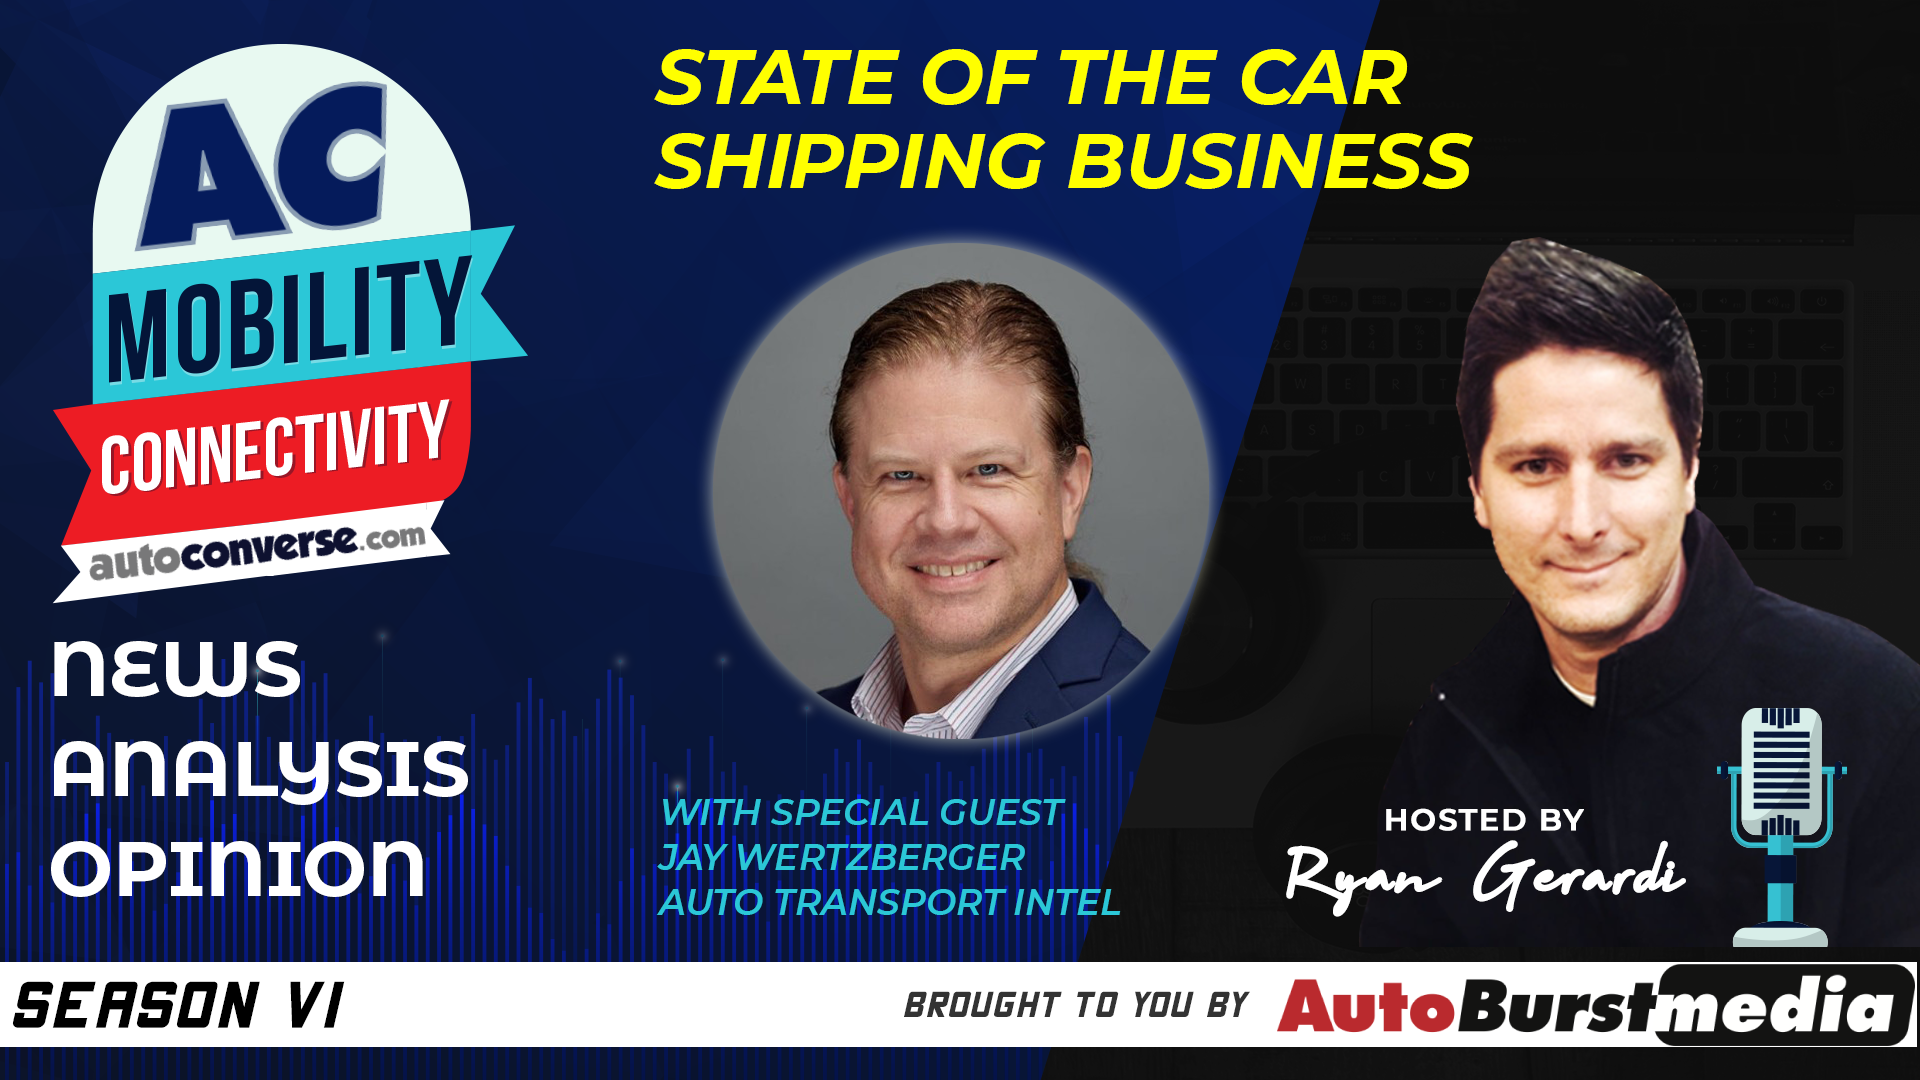 WED APR 01. Car Shipping and the State of Auto Retail. Conversation with Jay Wertzberger, Auto Transport Intel